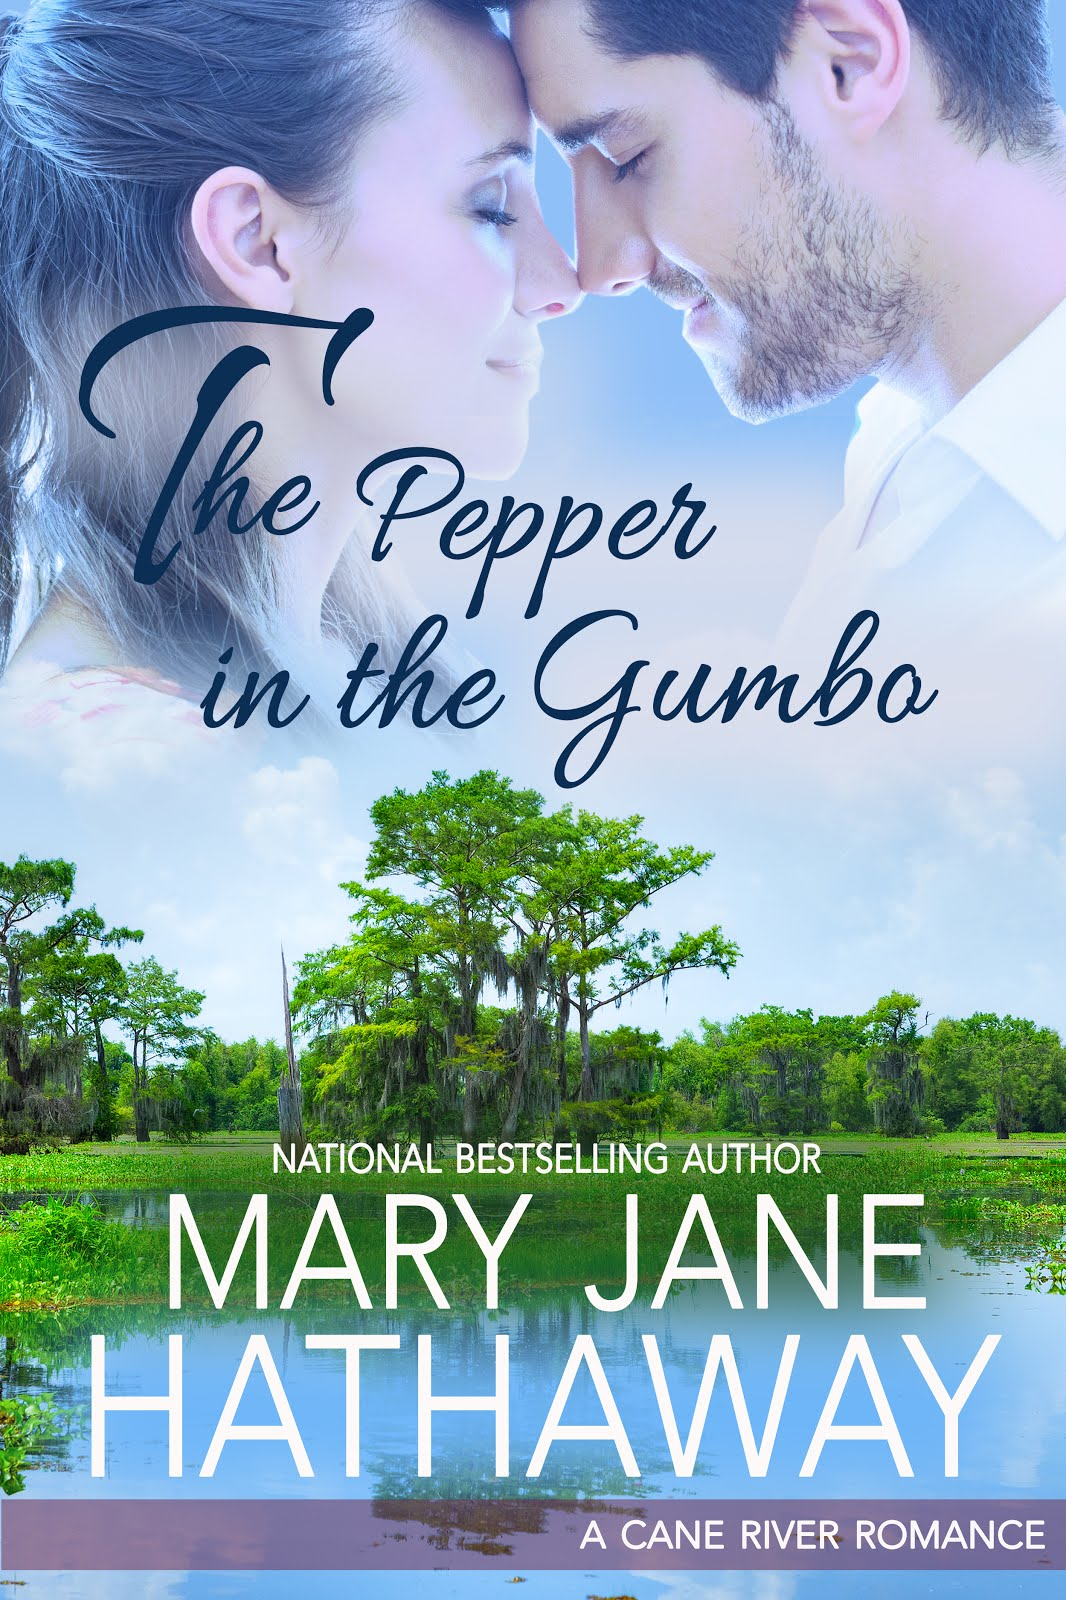 The Pepper in the Gumbo